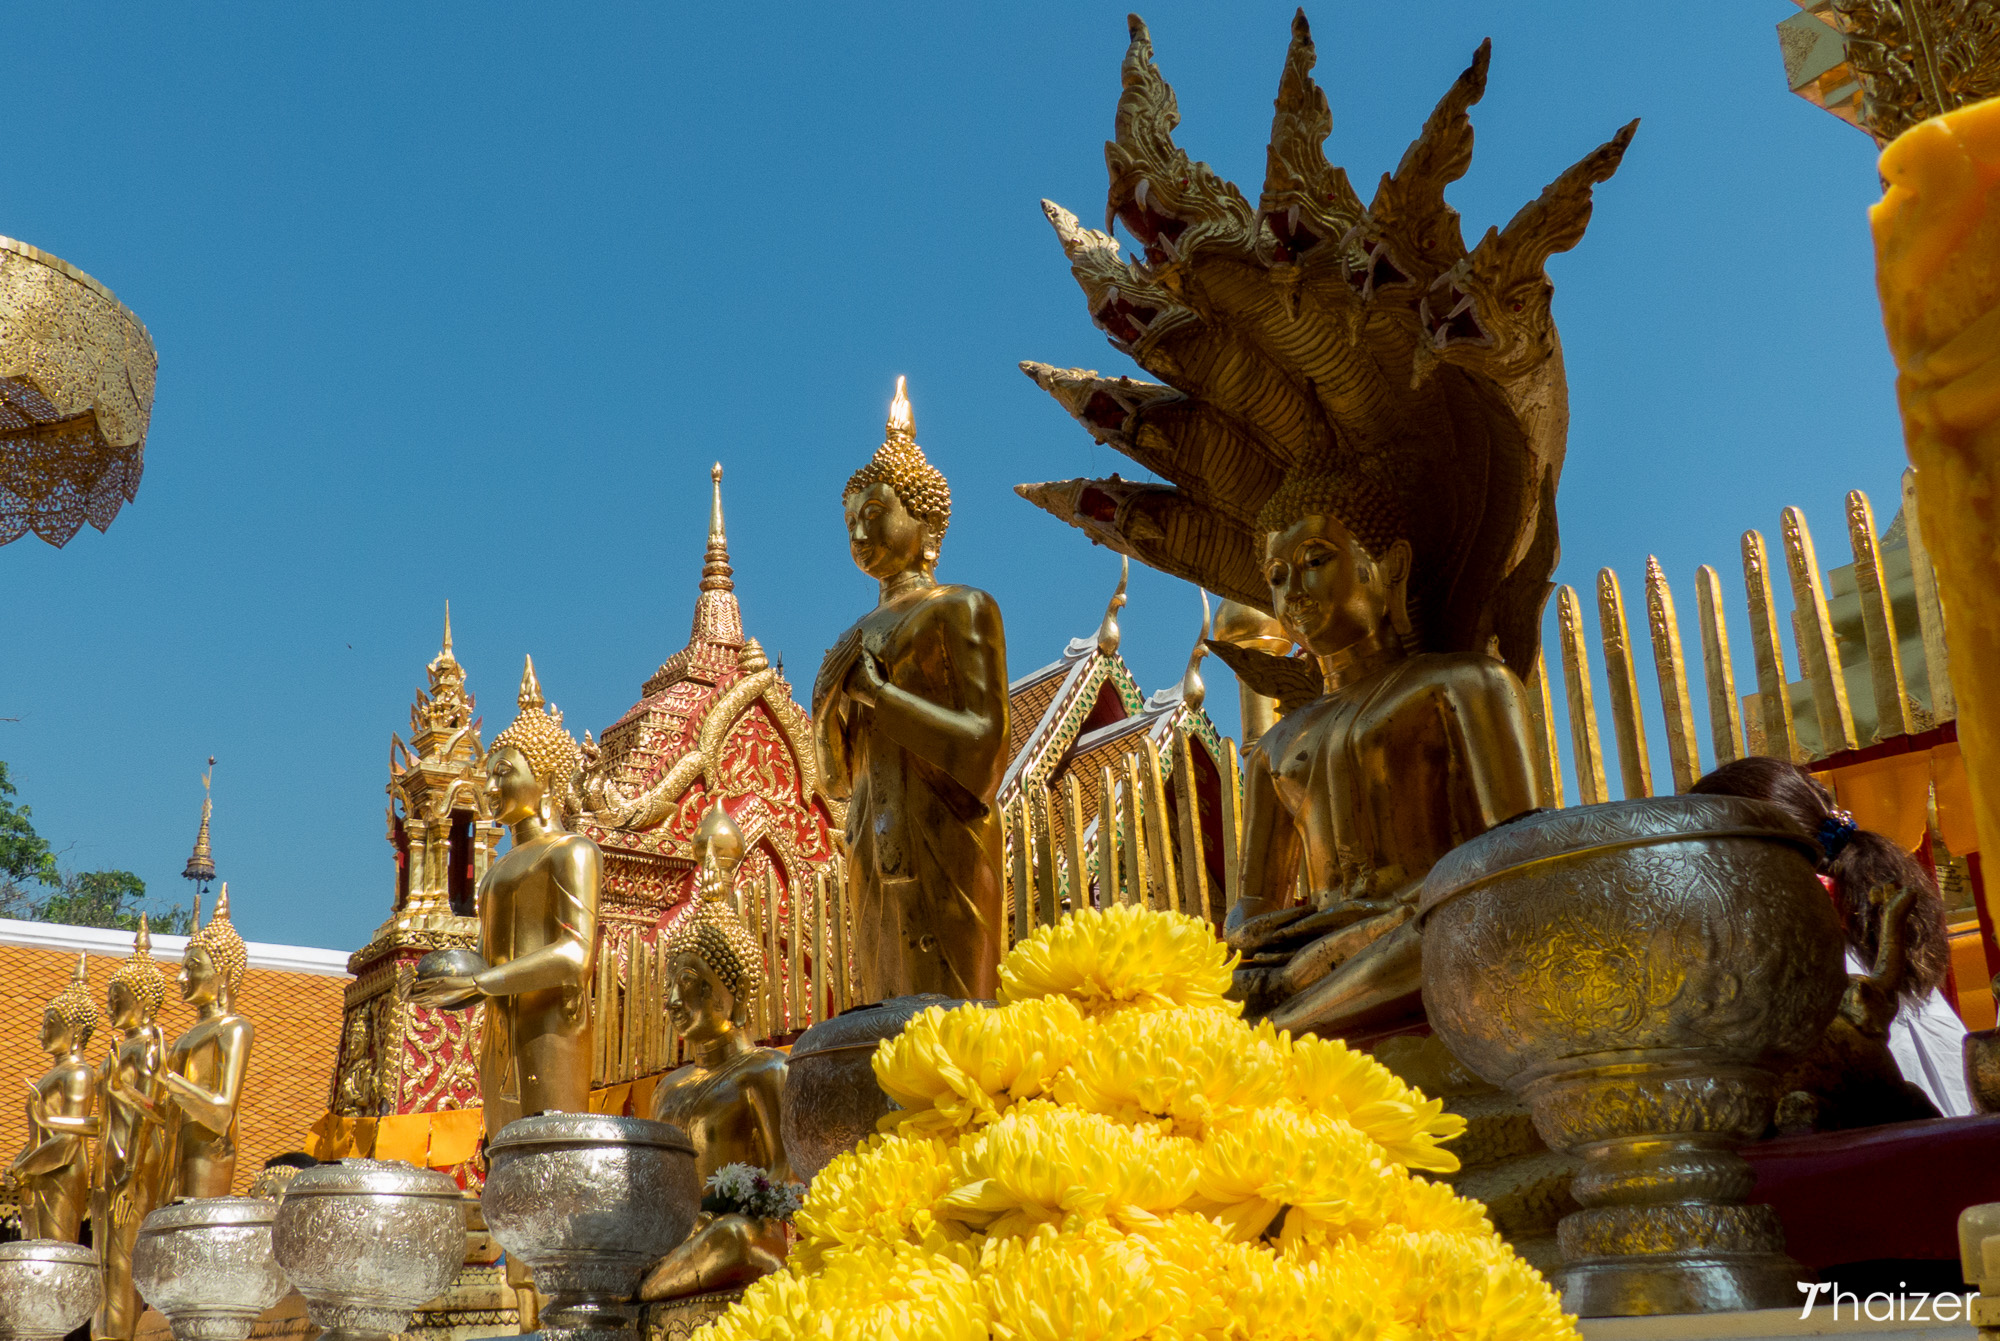 Buddha images at Doi Suthep, Chiang Mai